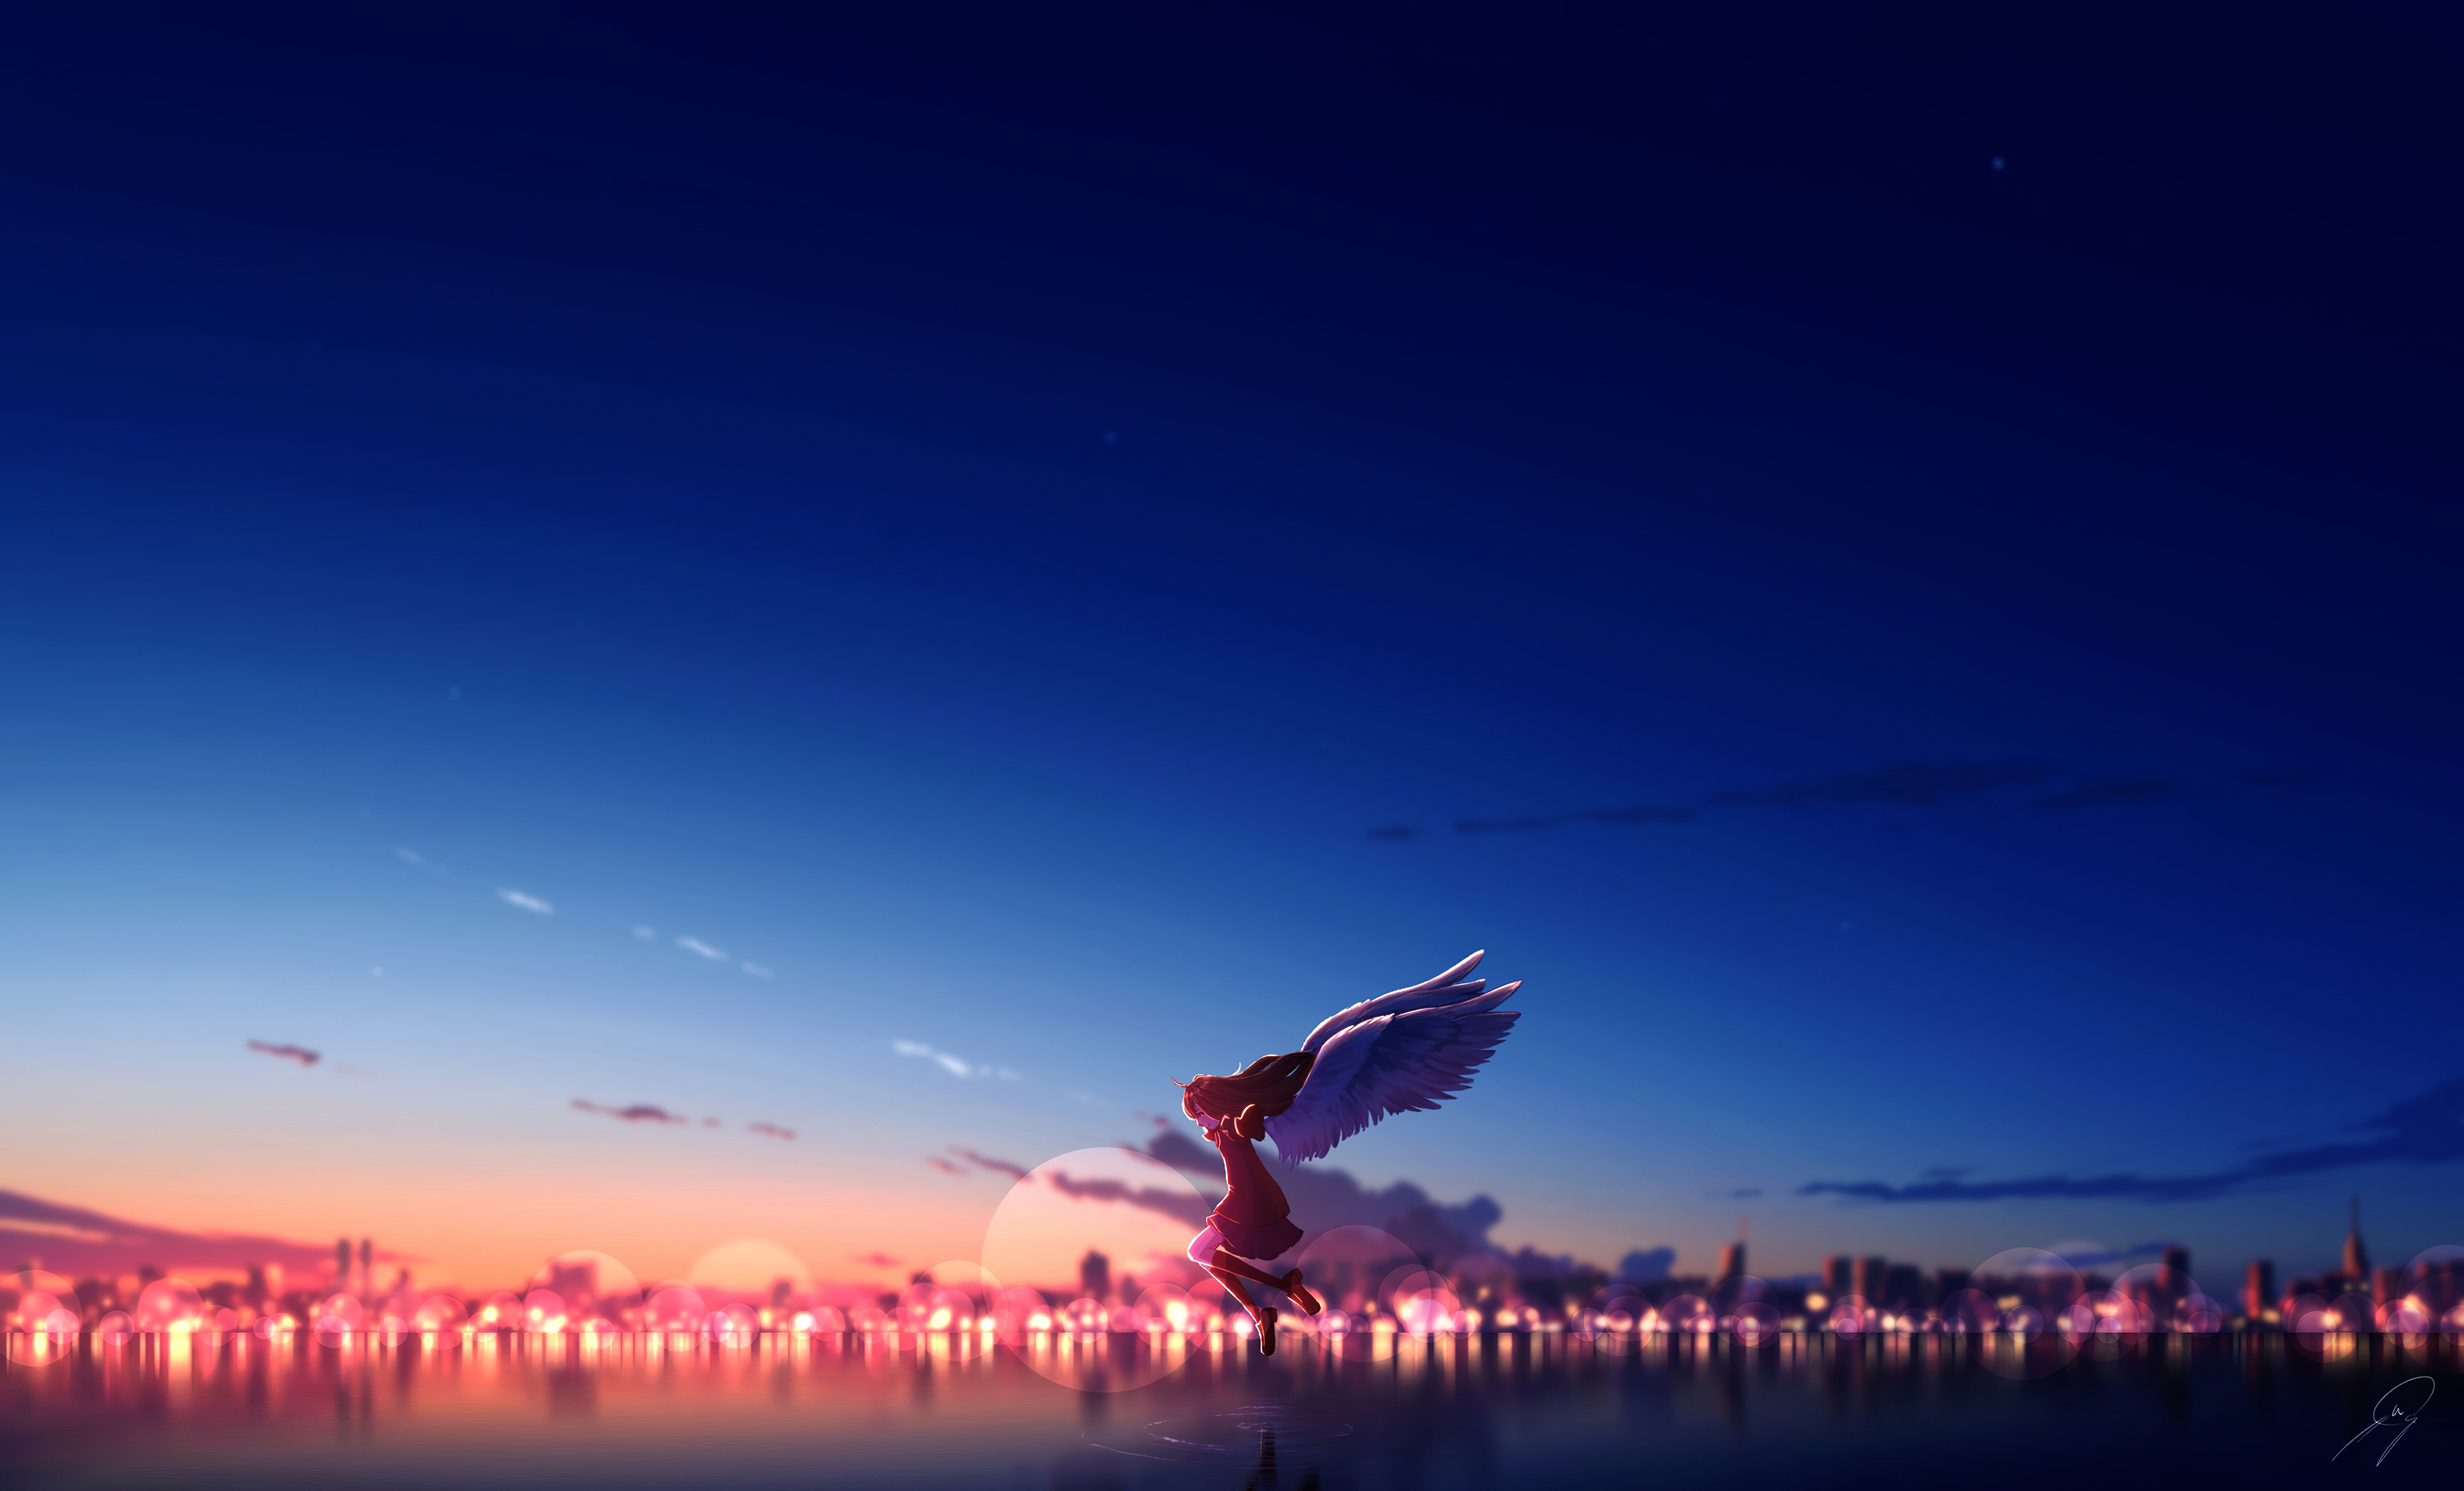 Anime Girl Angel Sky 4k Hd Anime 4k Wallpapers Images Backgrounds Photos And Pictures